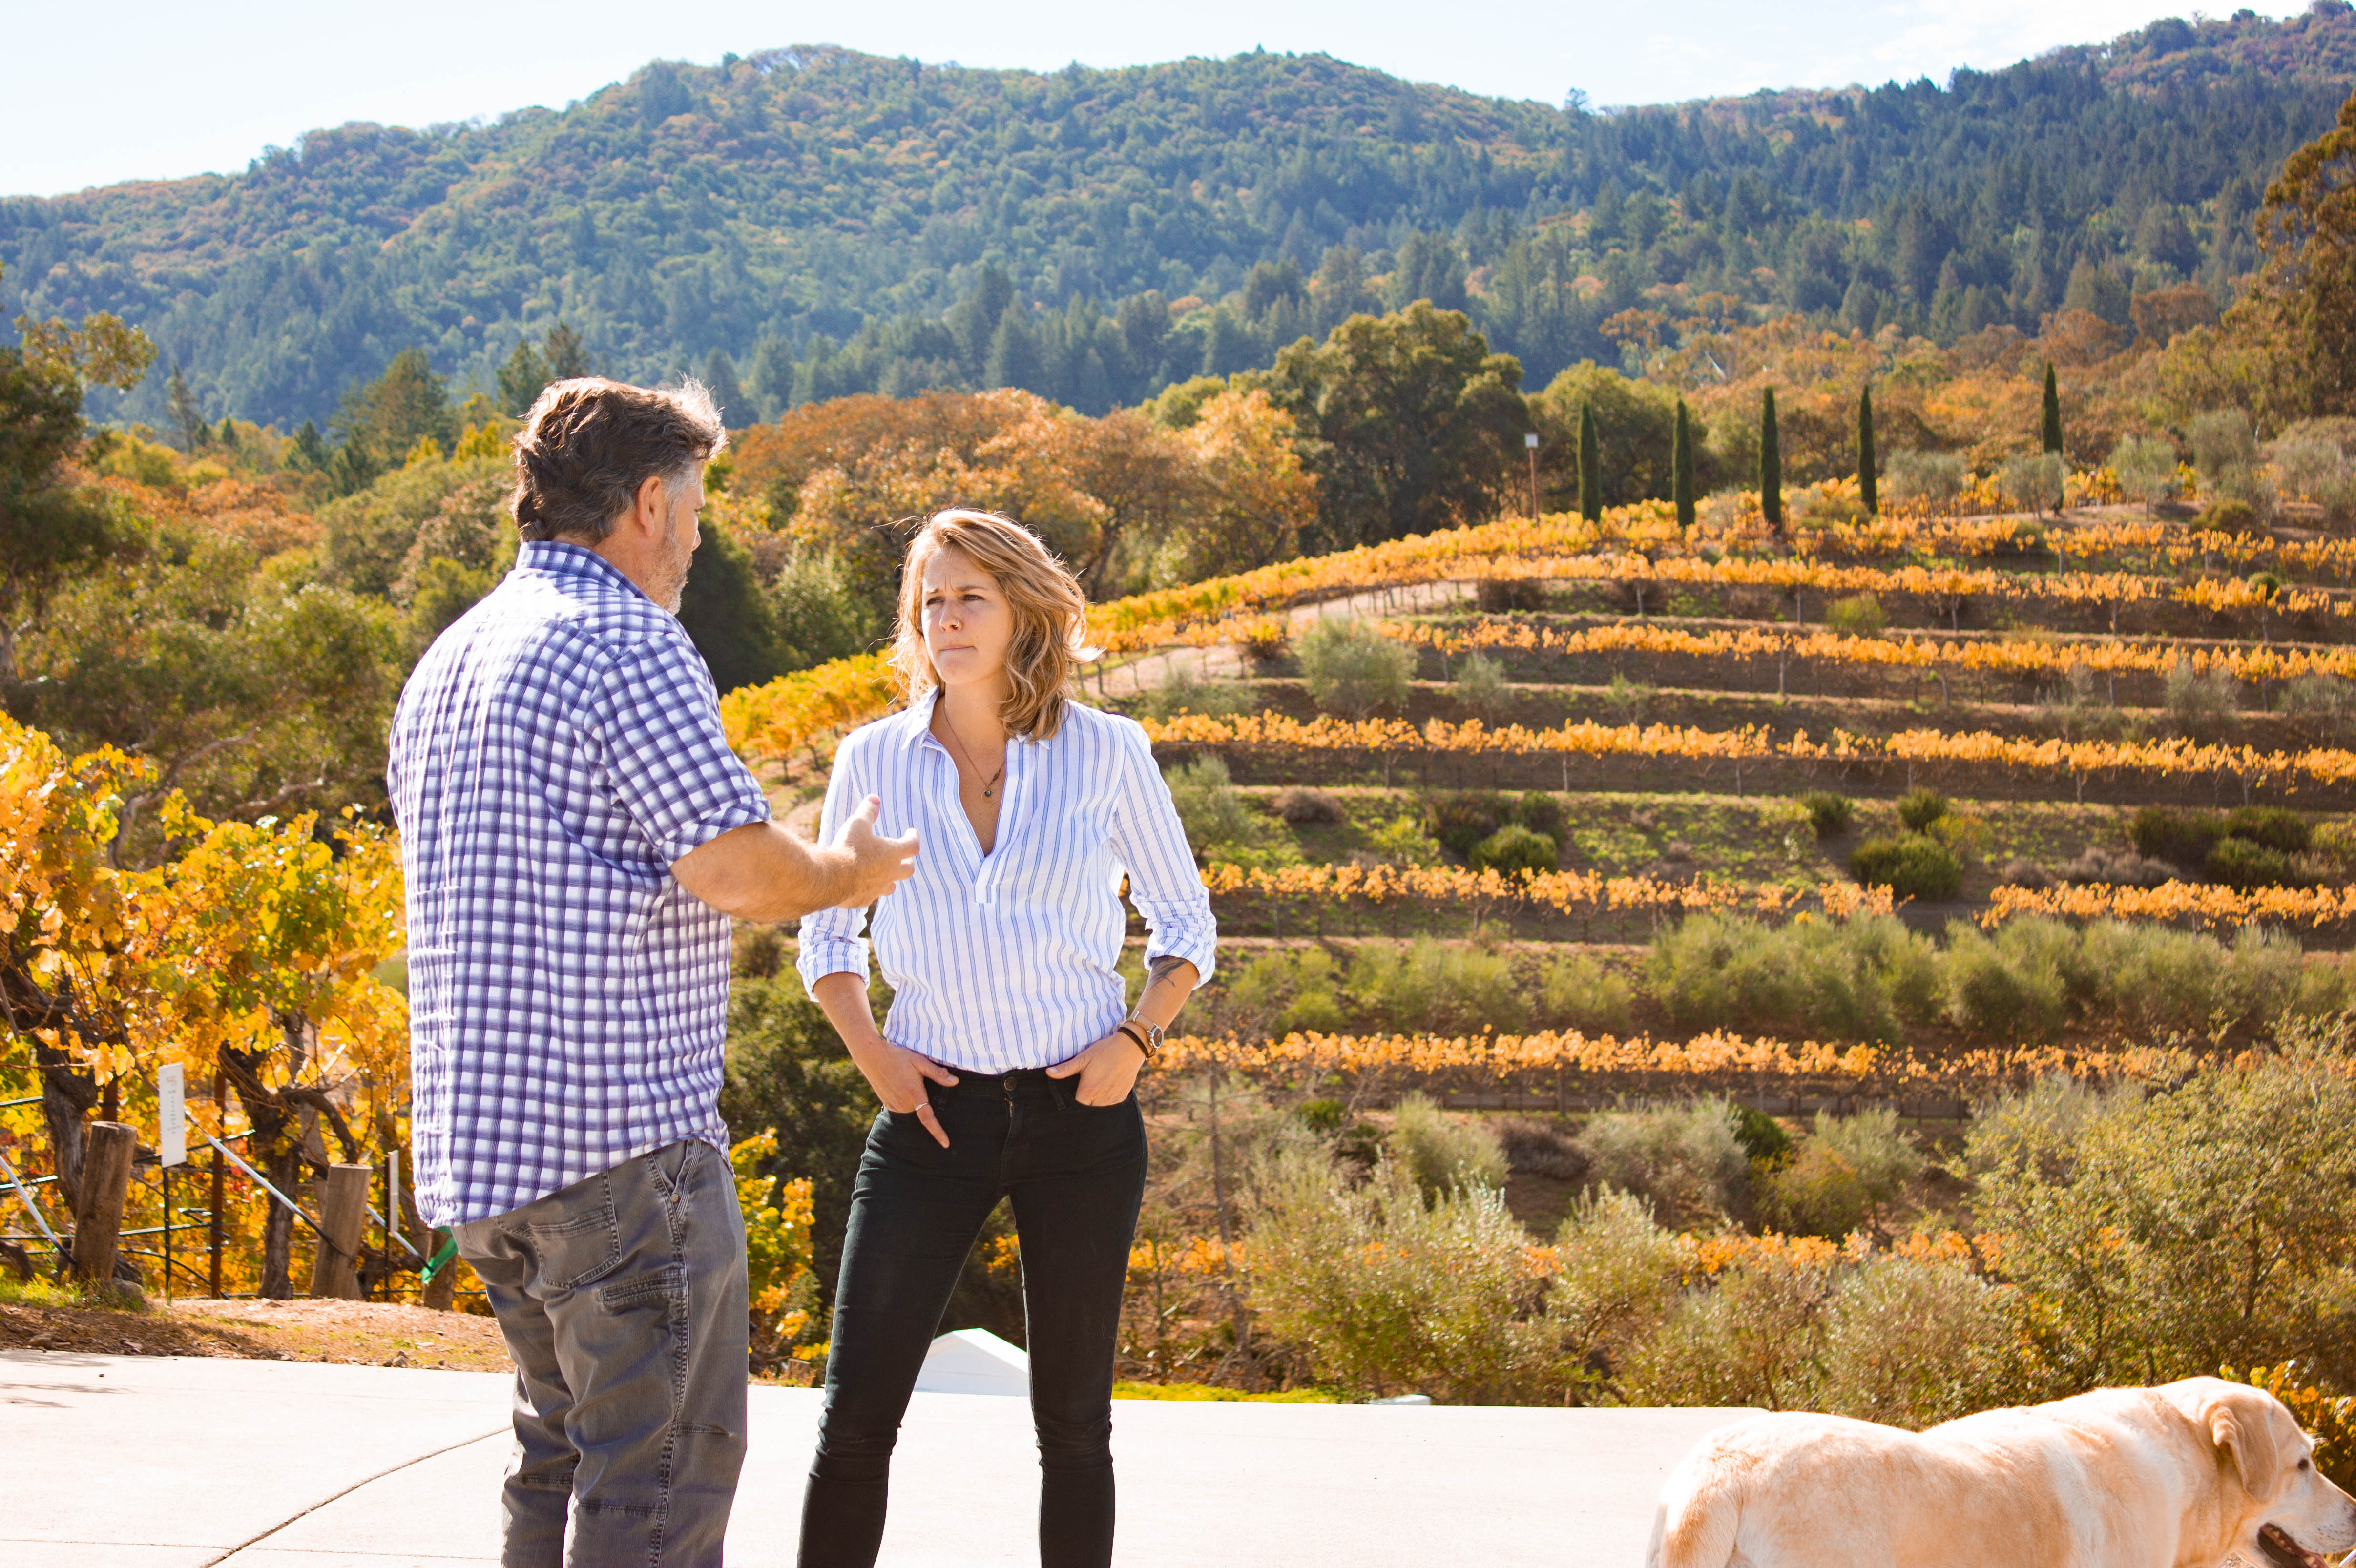 Take a tram tour at Benziger Family Winery and you might meet owner Chris Benziger, Sonoma County, California